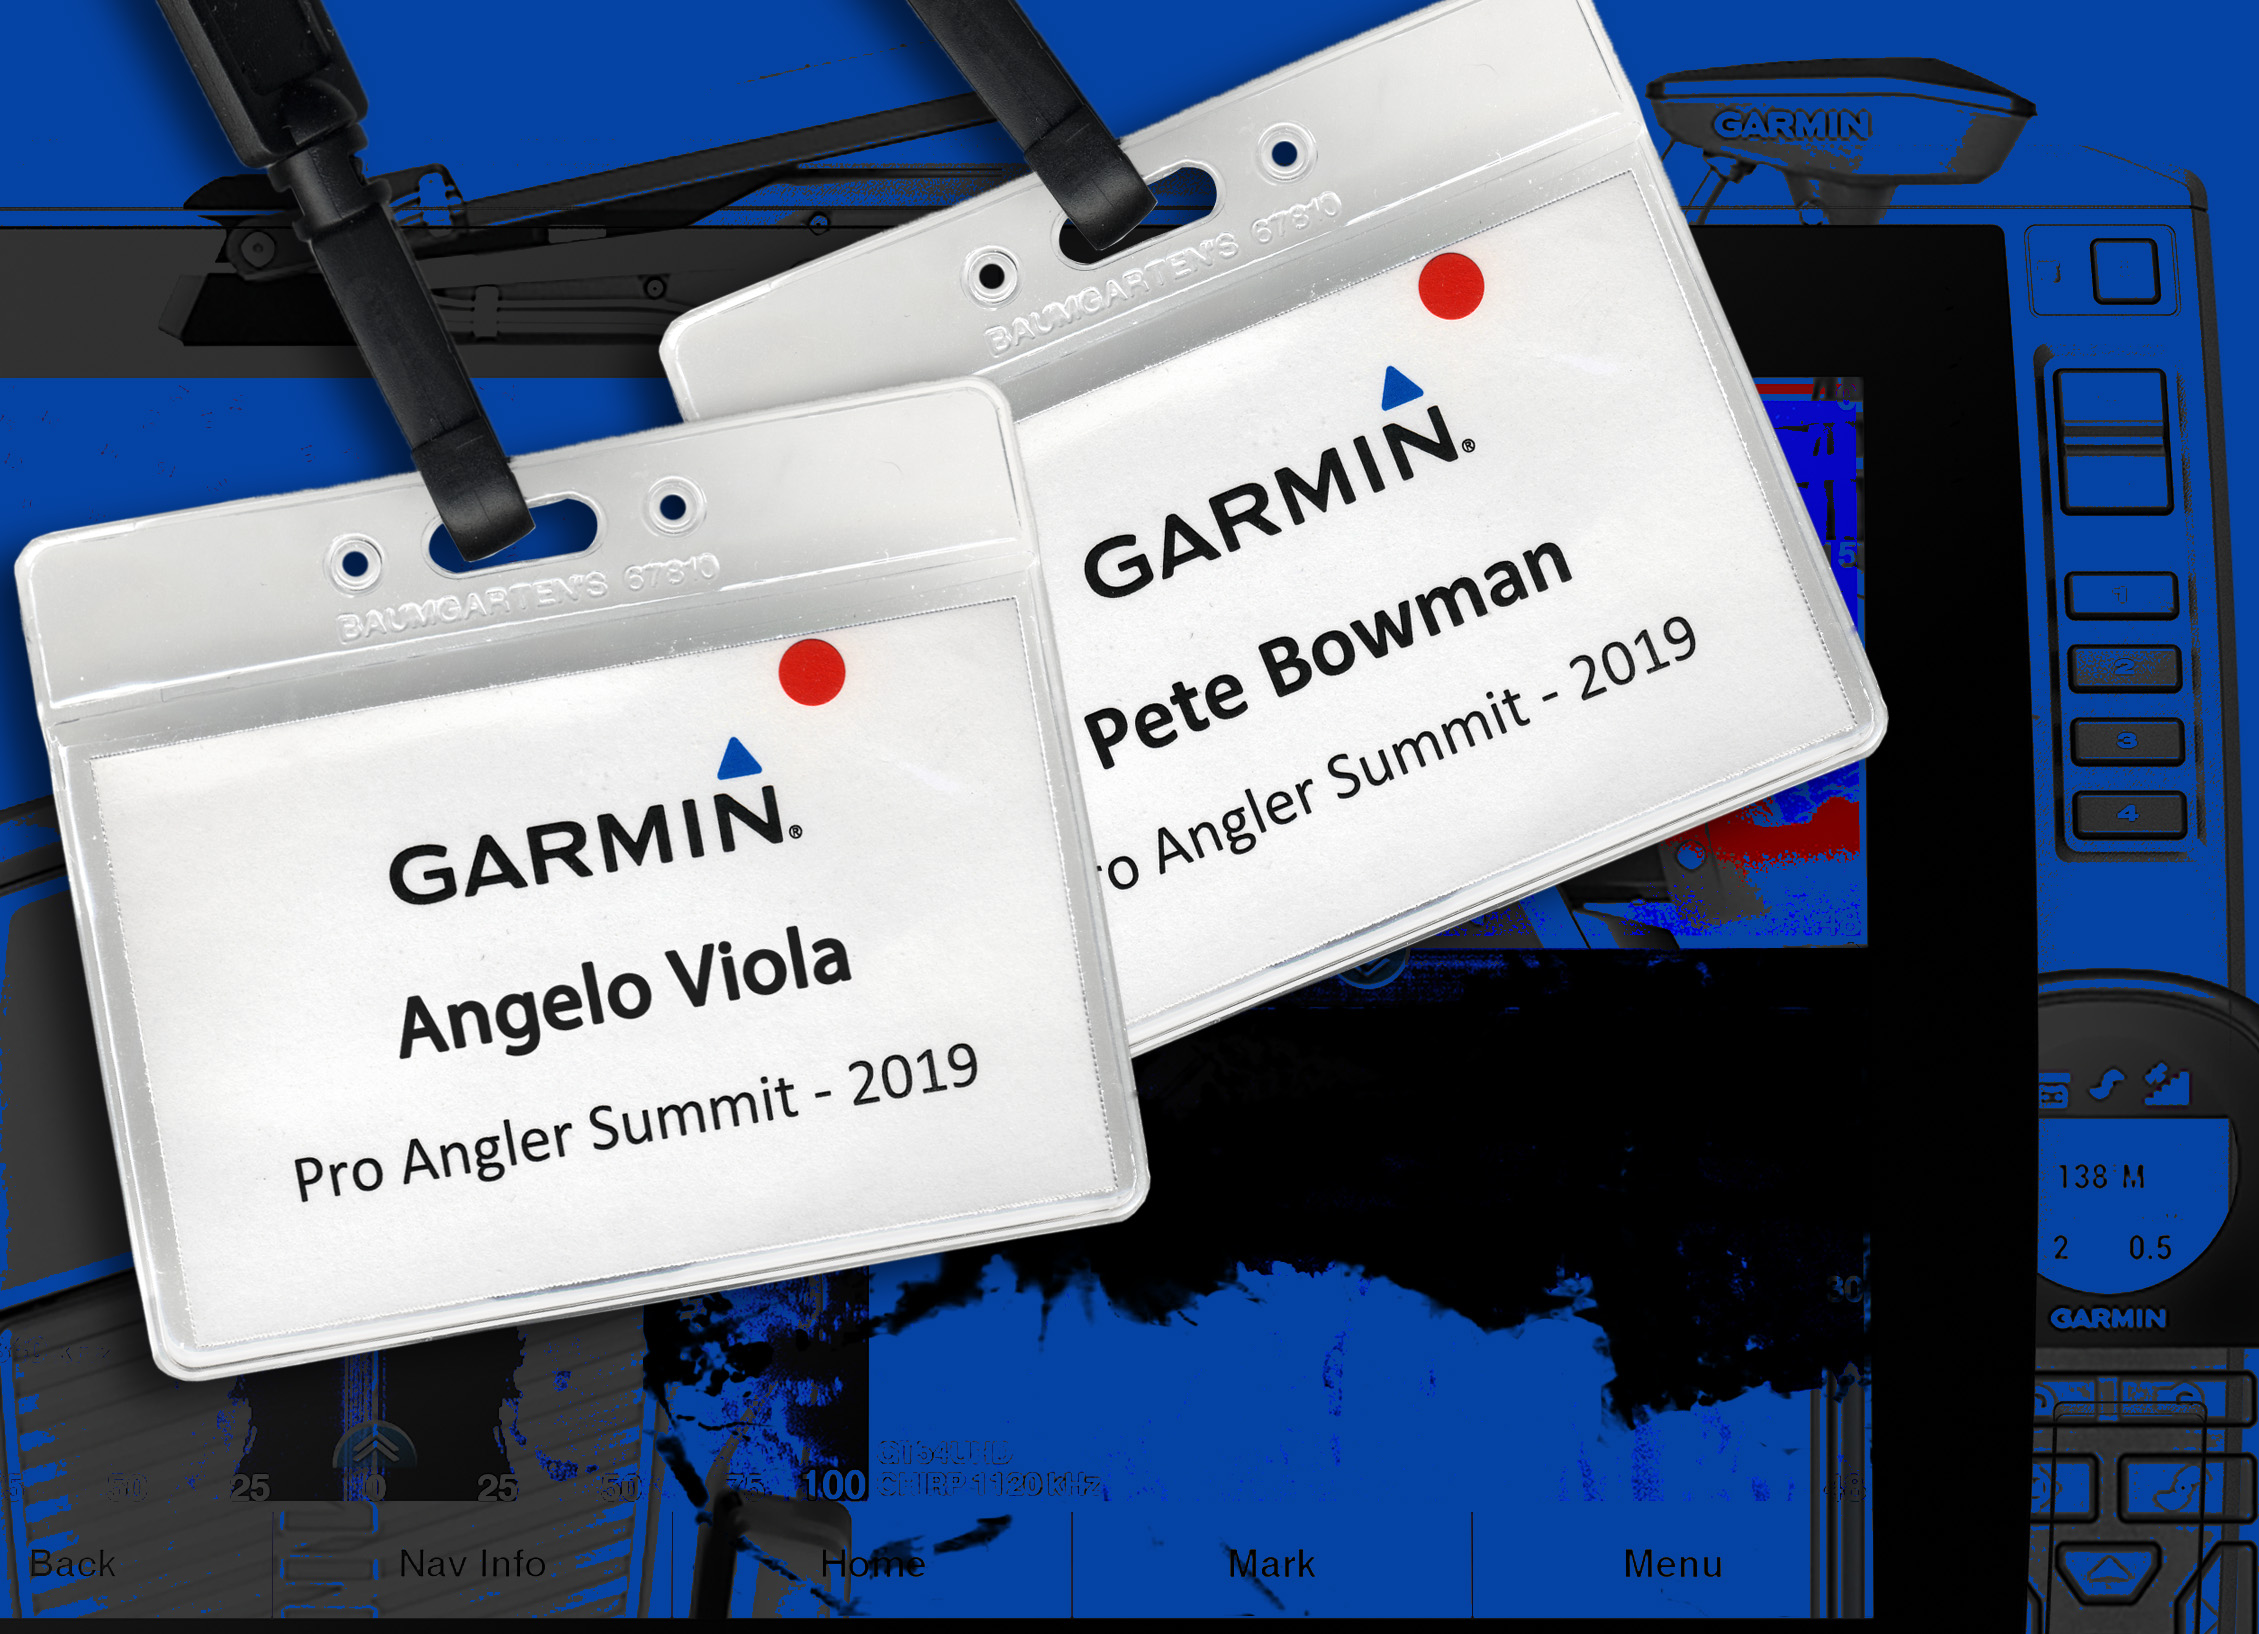 Garmin Pro Angler Summit 2019 Overview